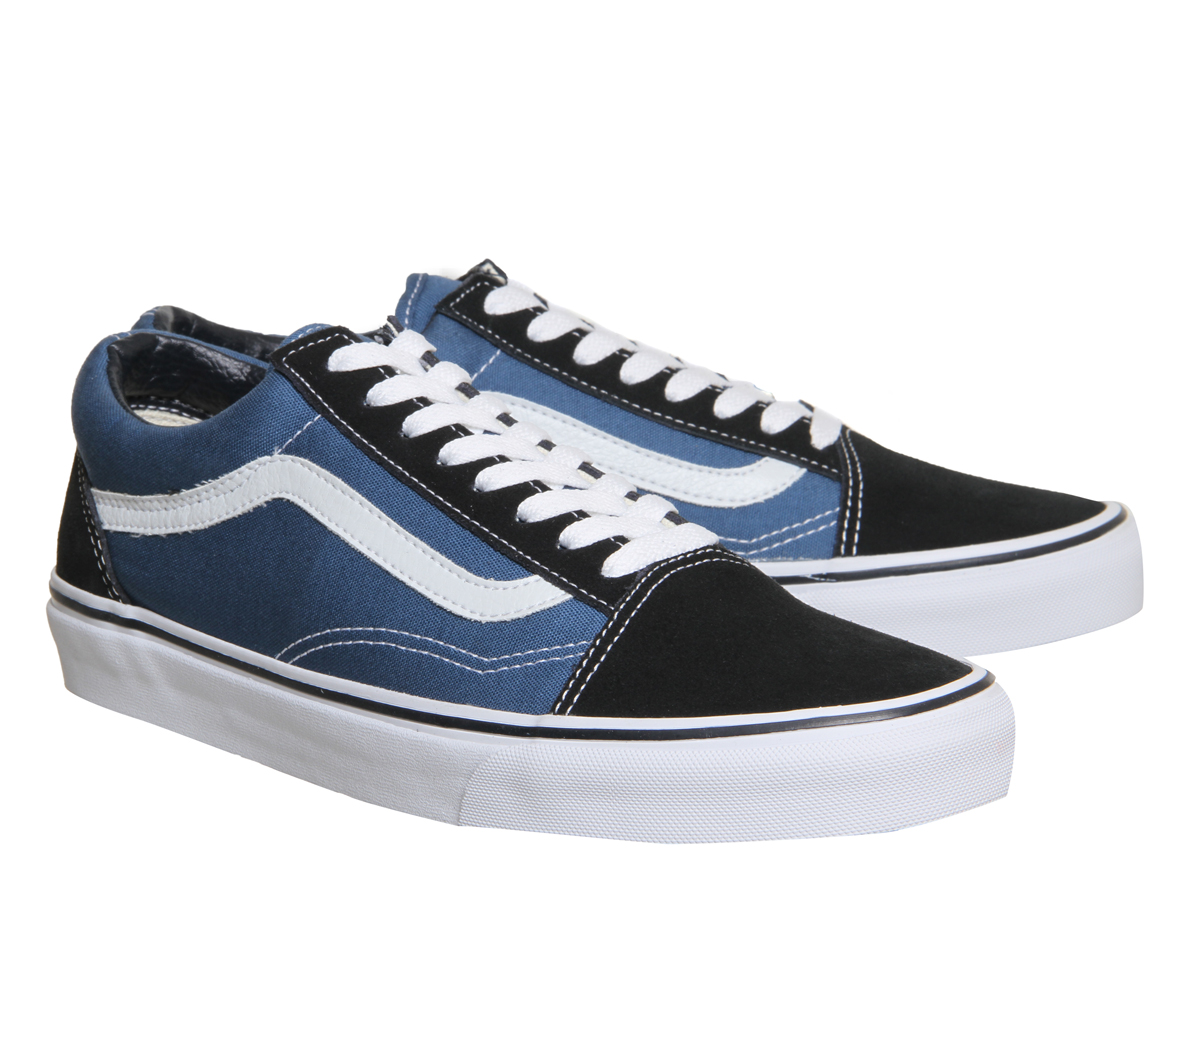 2b828f8f900 Details about Mens Vans Old Skool Navy Trainers Shoes